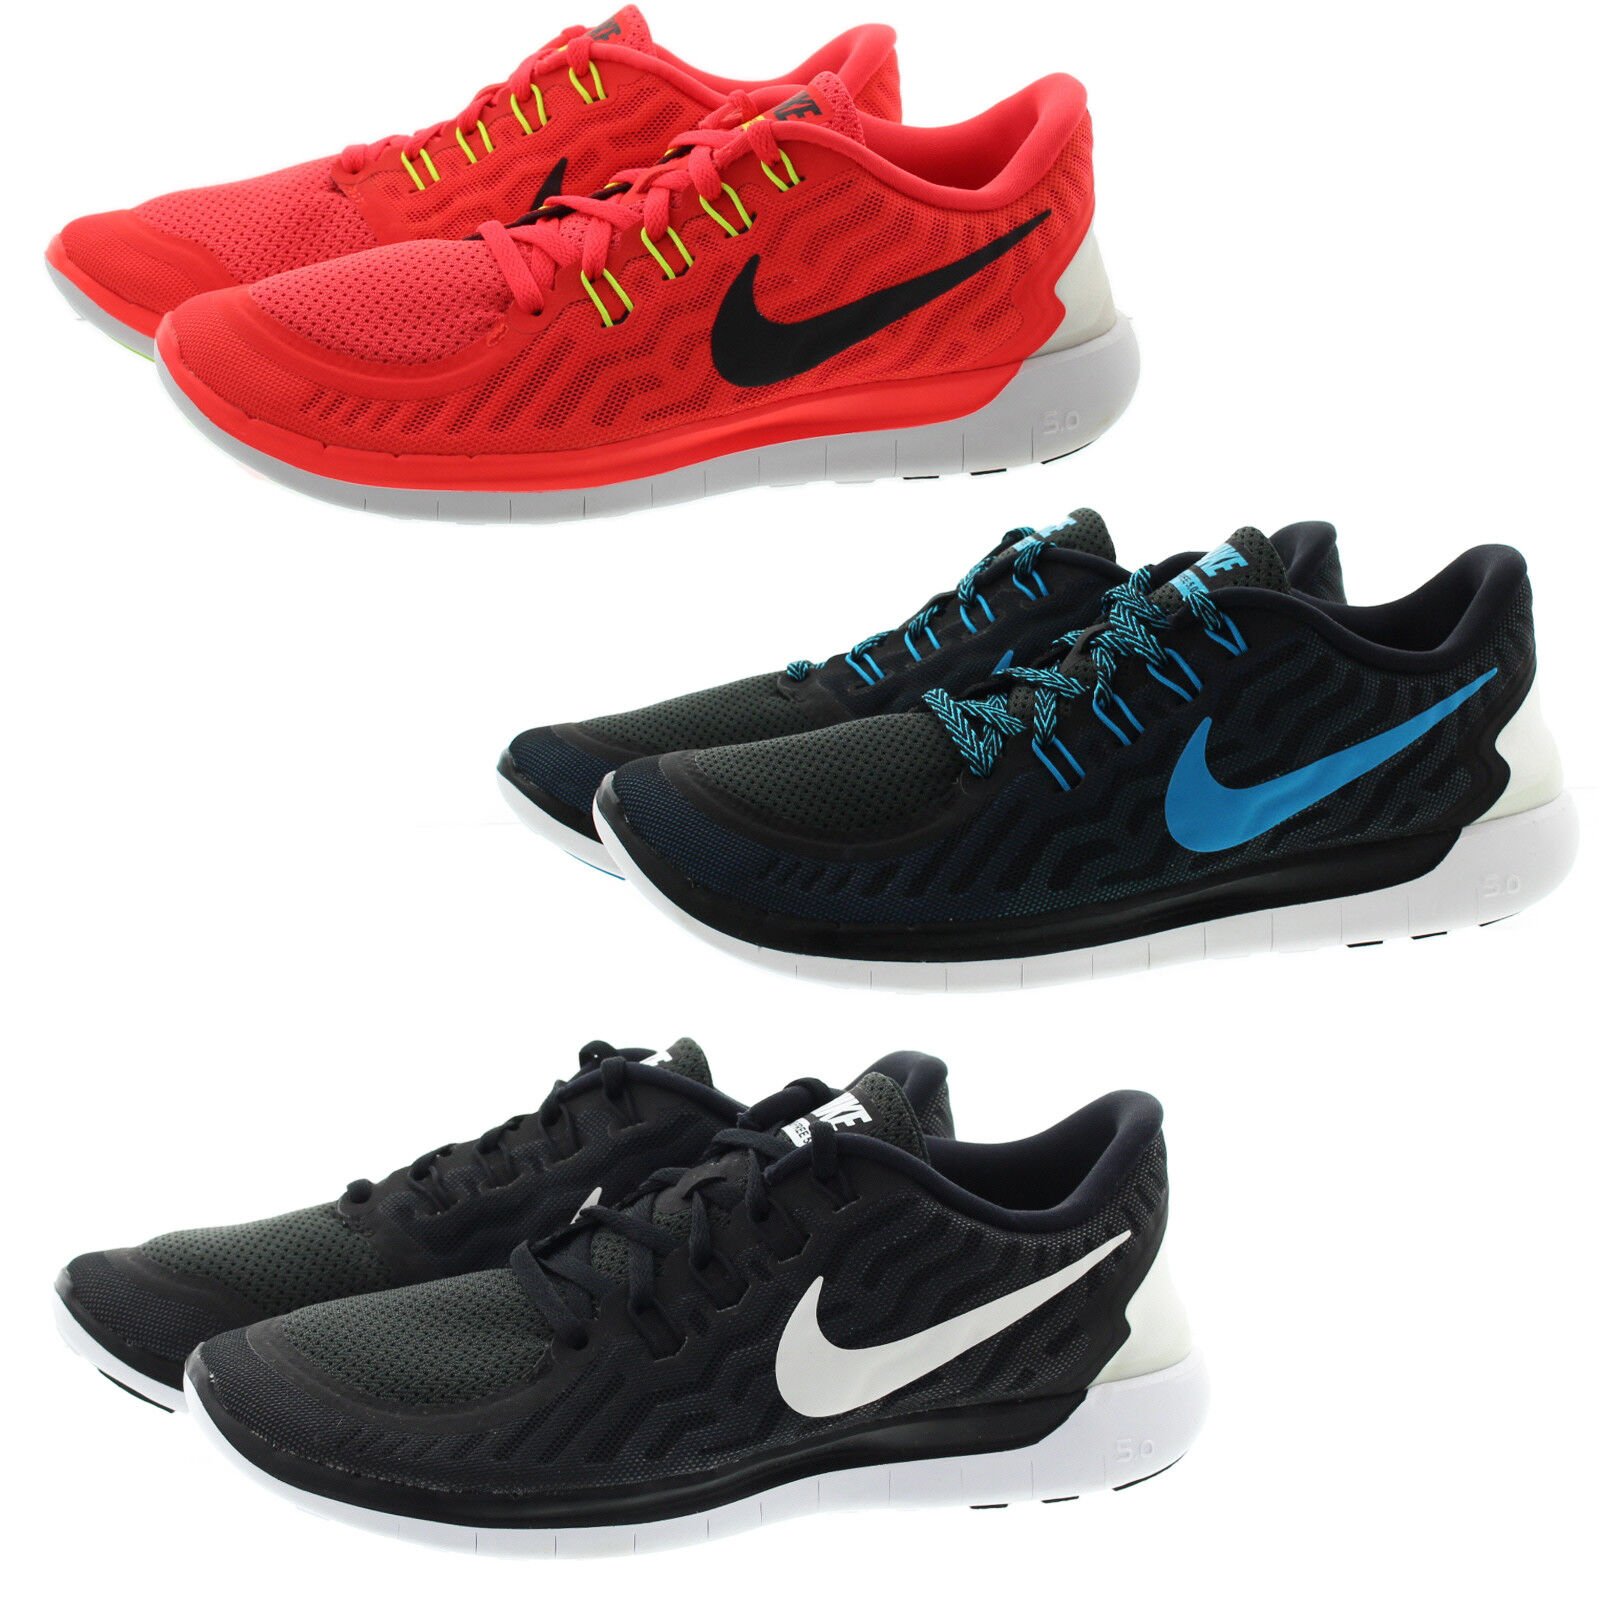 Nike 724382 Mens Free 5.0 Low Top Running Training Athletic shoes Sneakers